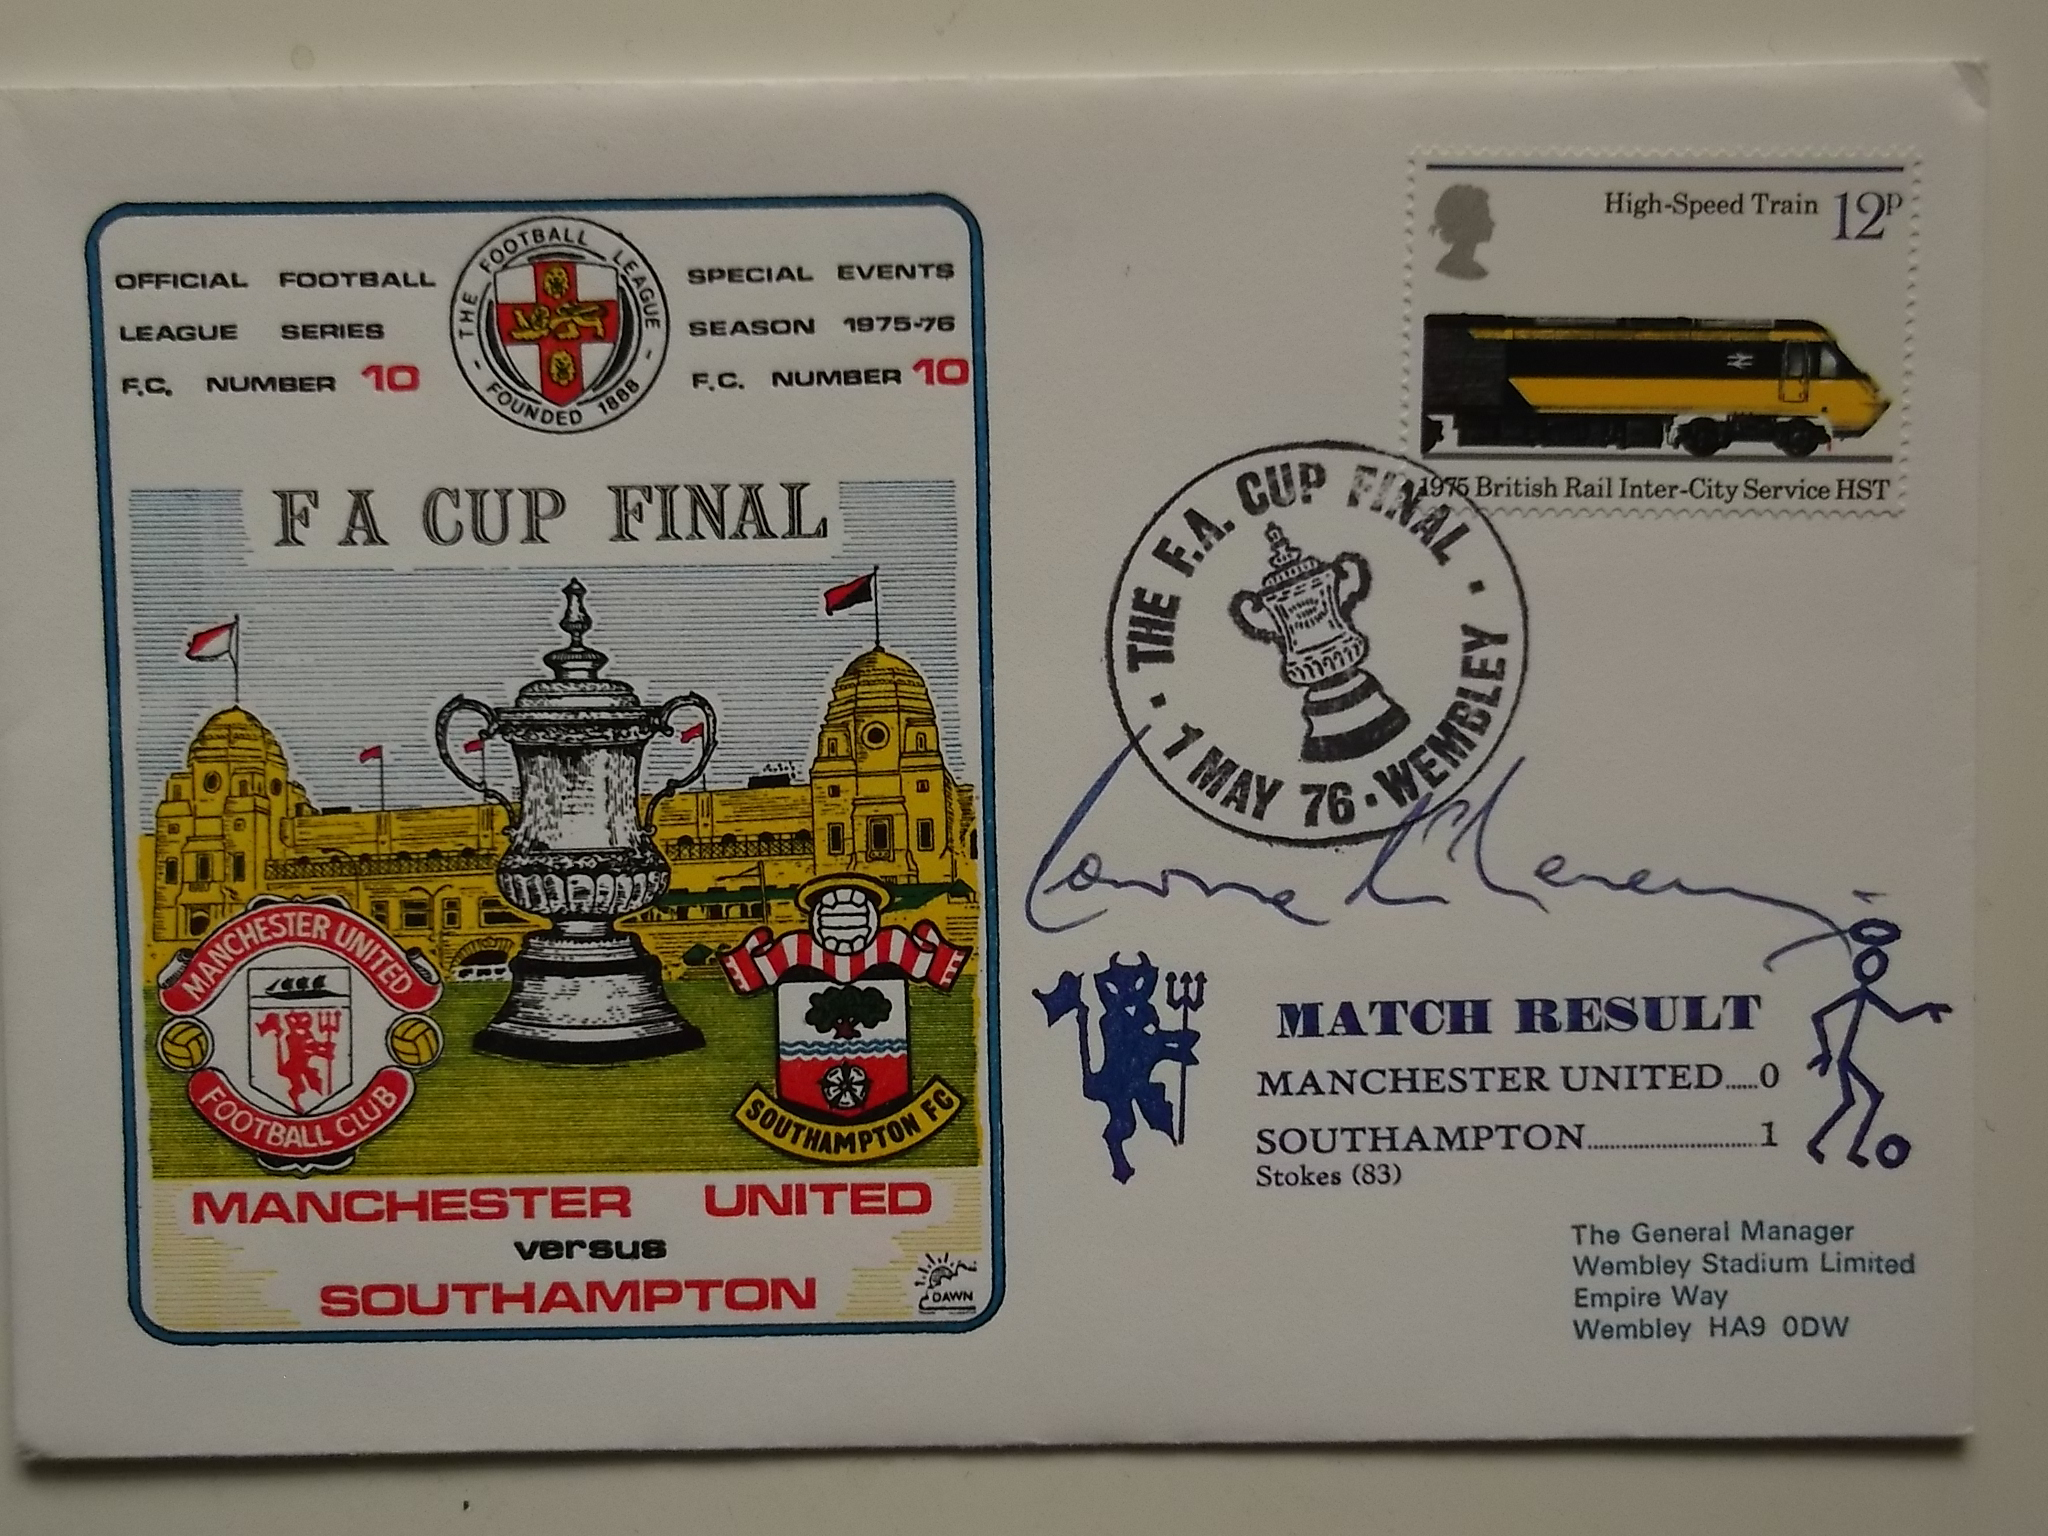 Lot 20 - 1976 FA CUP FINAL MANCHESTER UTD V SOUTHAMPTON POSTAL COVER SIGNED BY LAWRIE McMENEMY